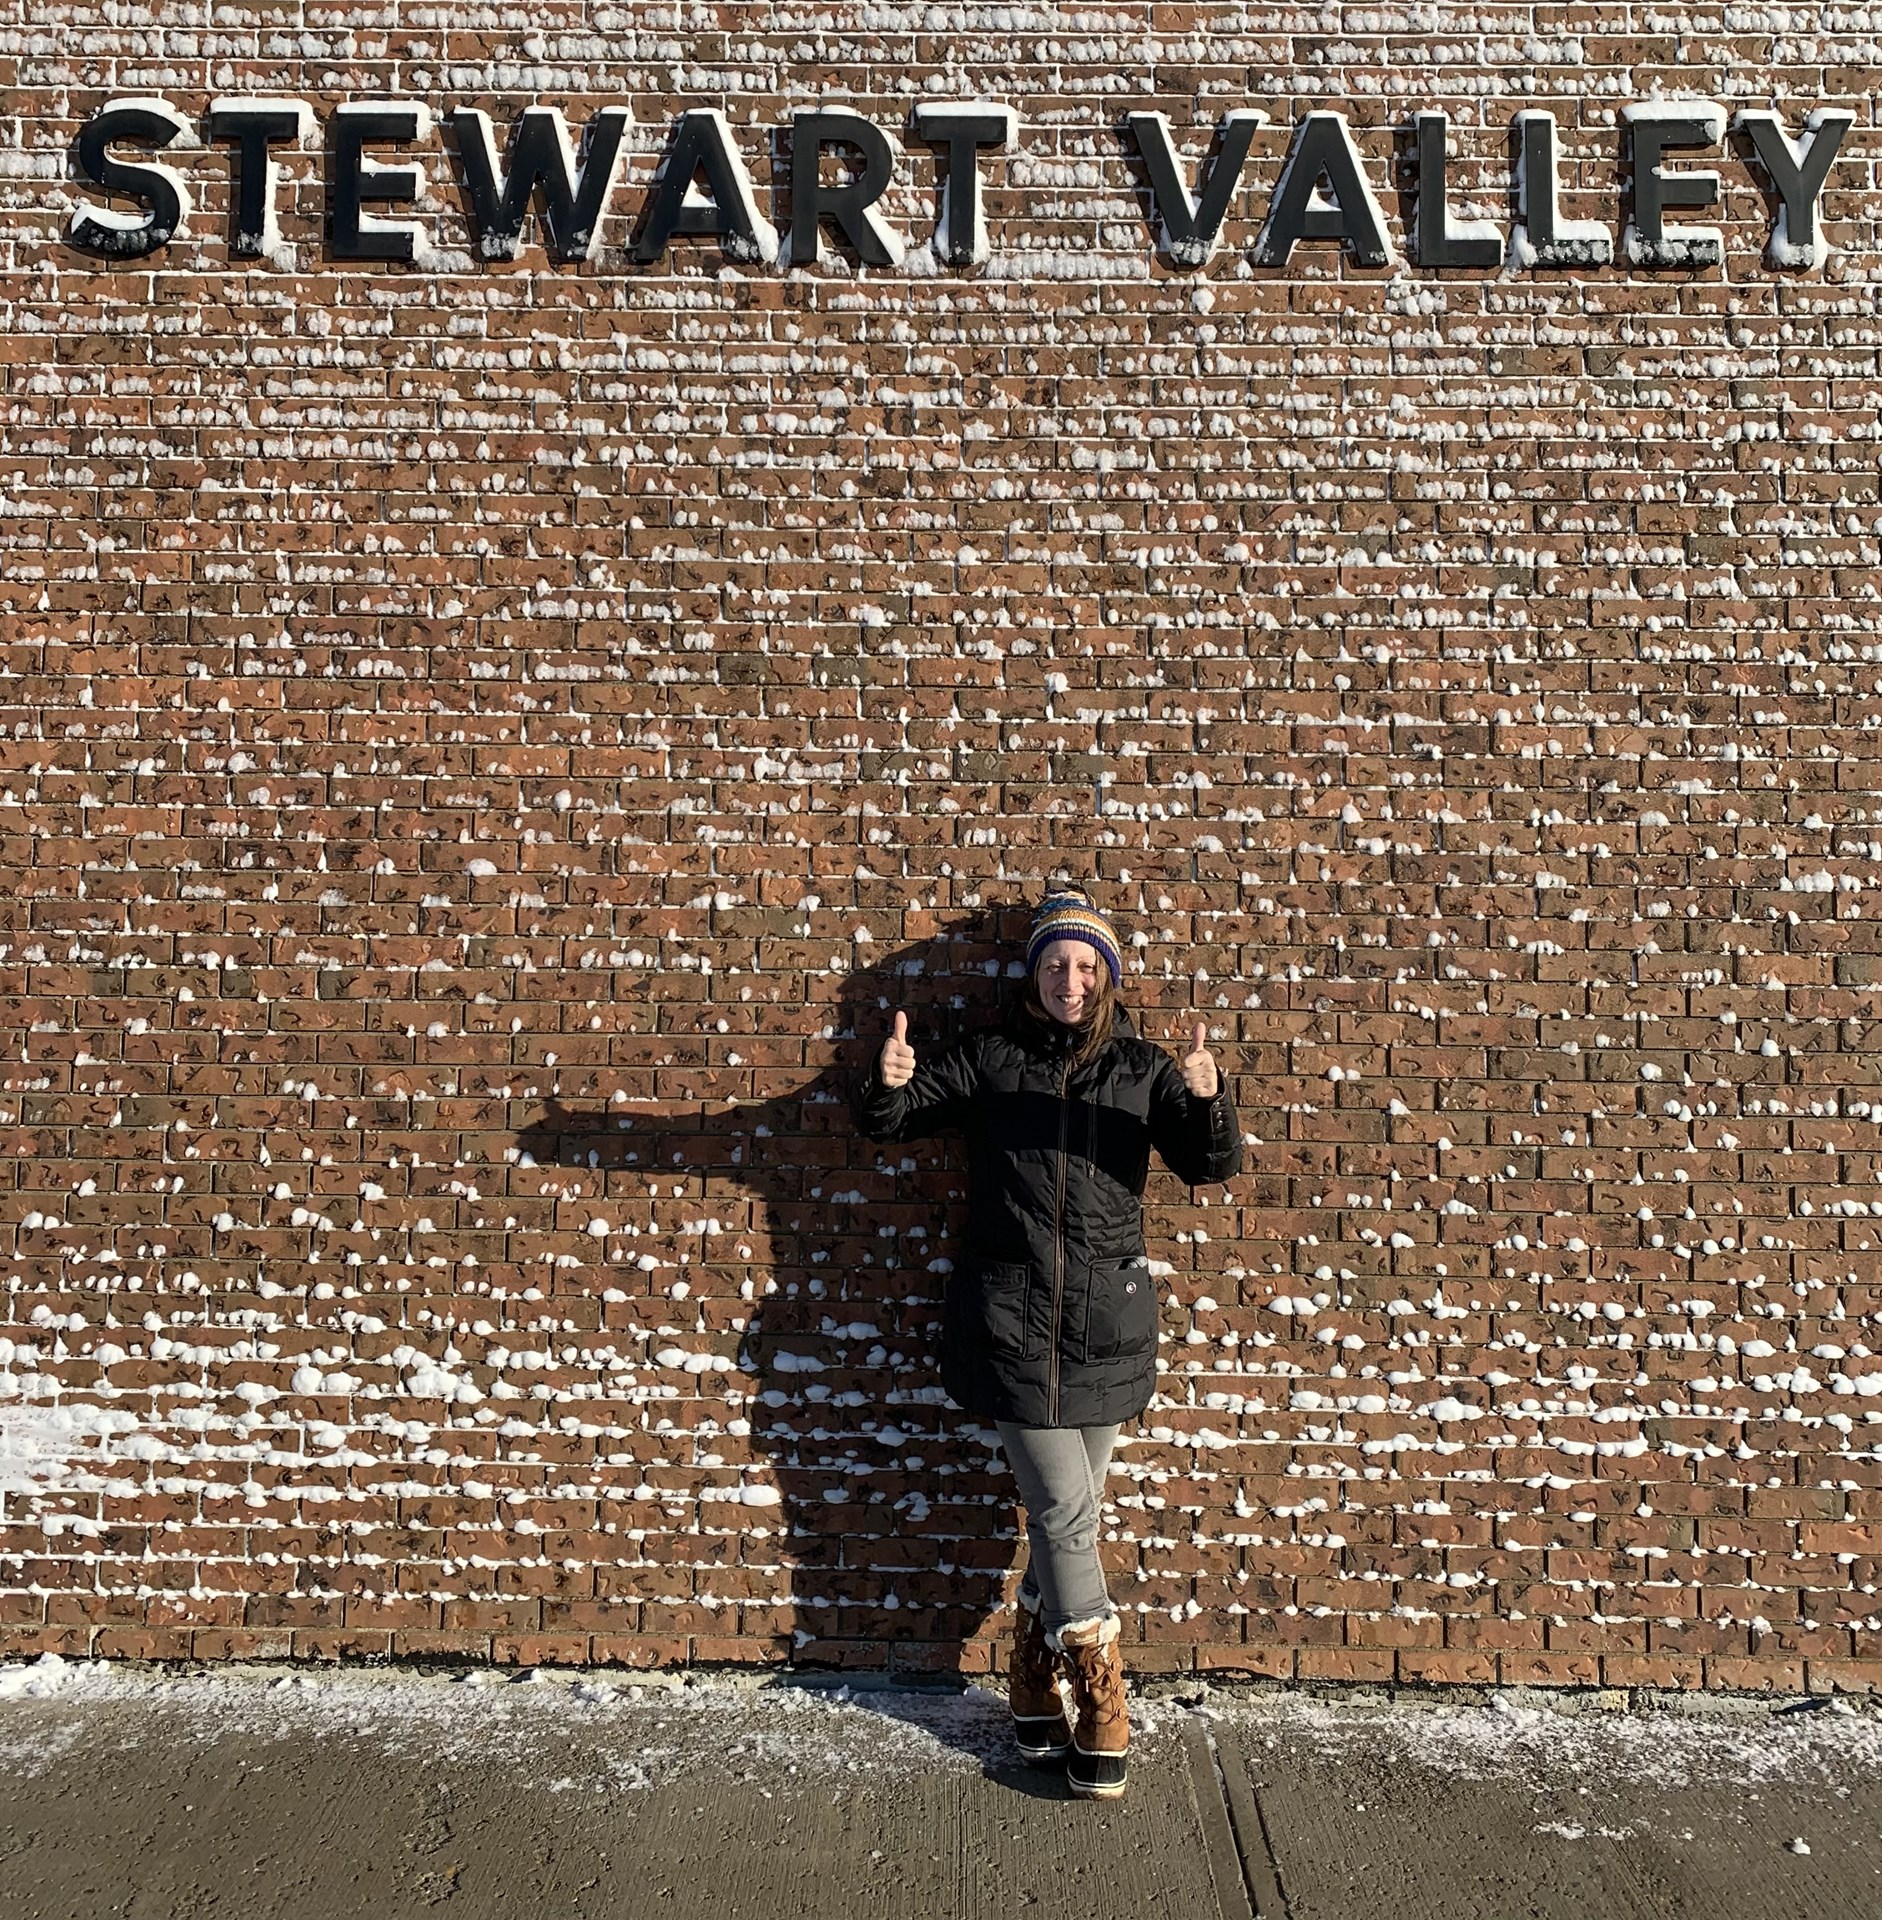 Kindness at Stewart Valley School